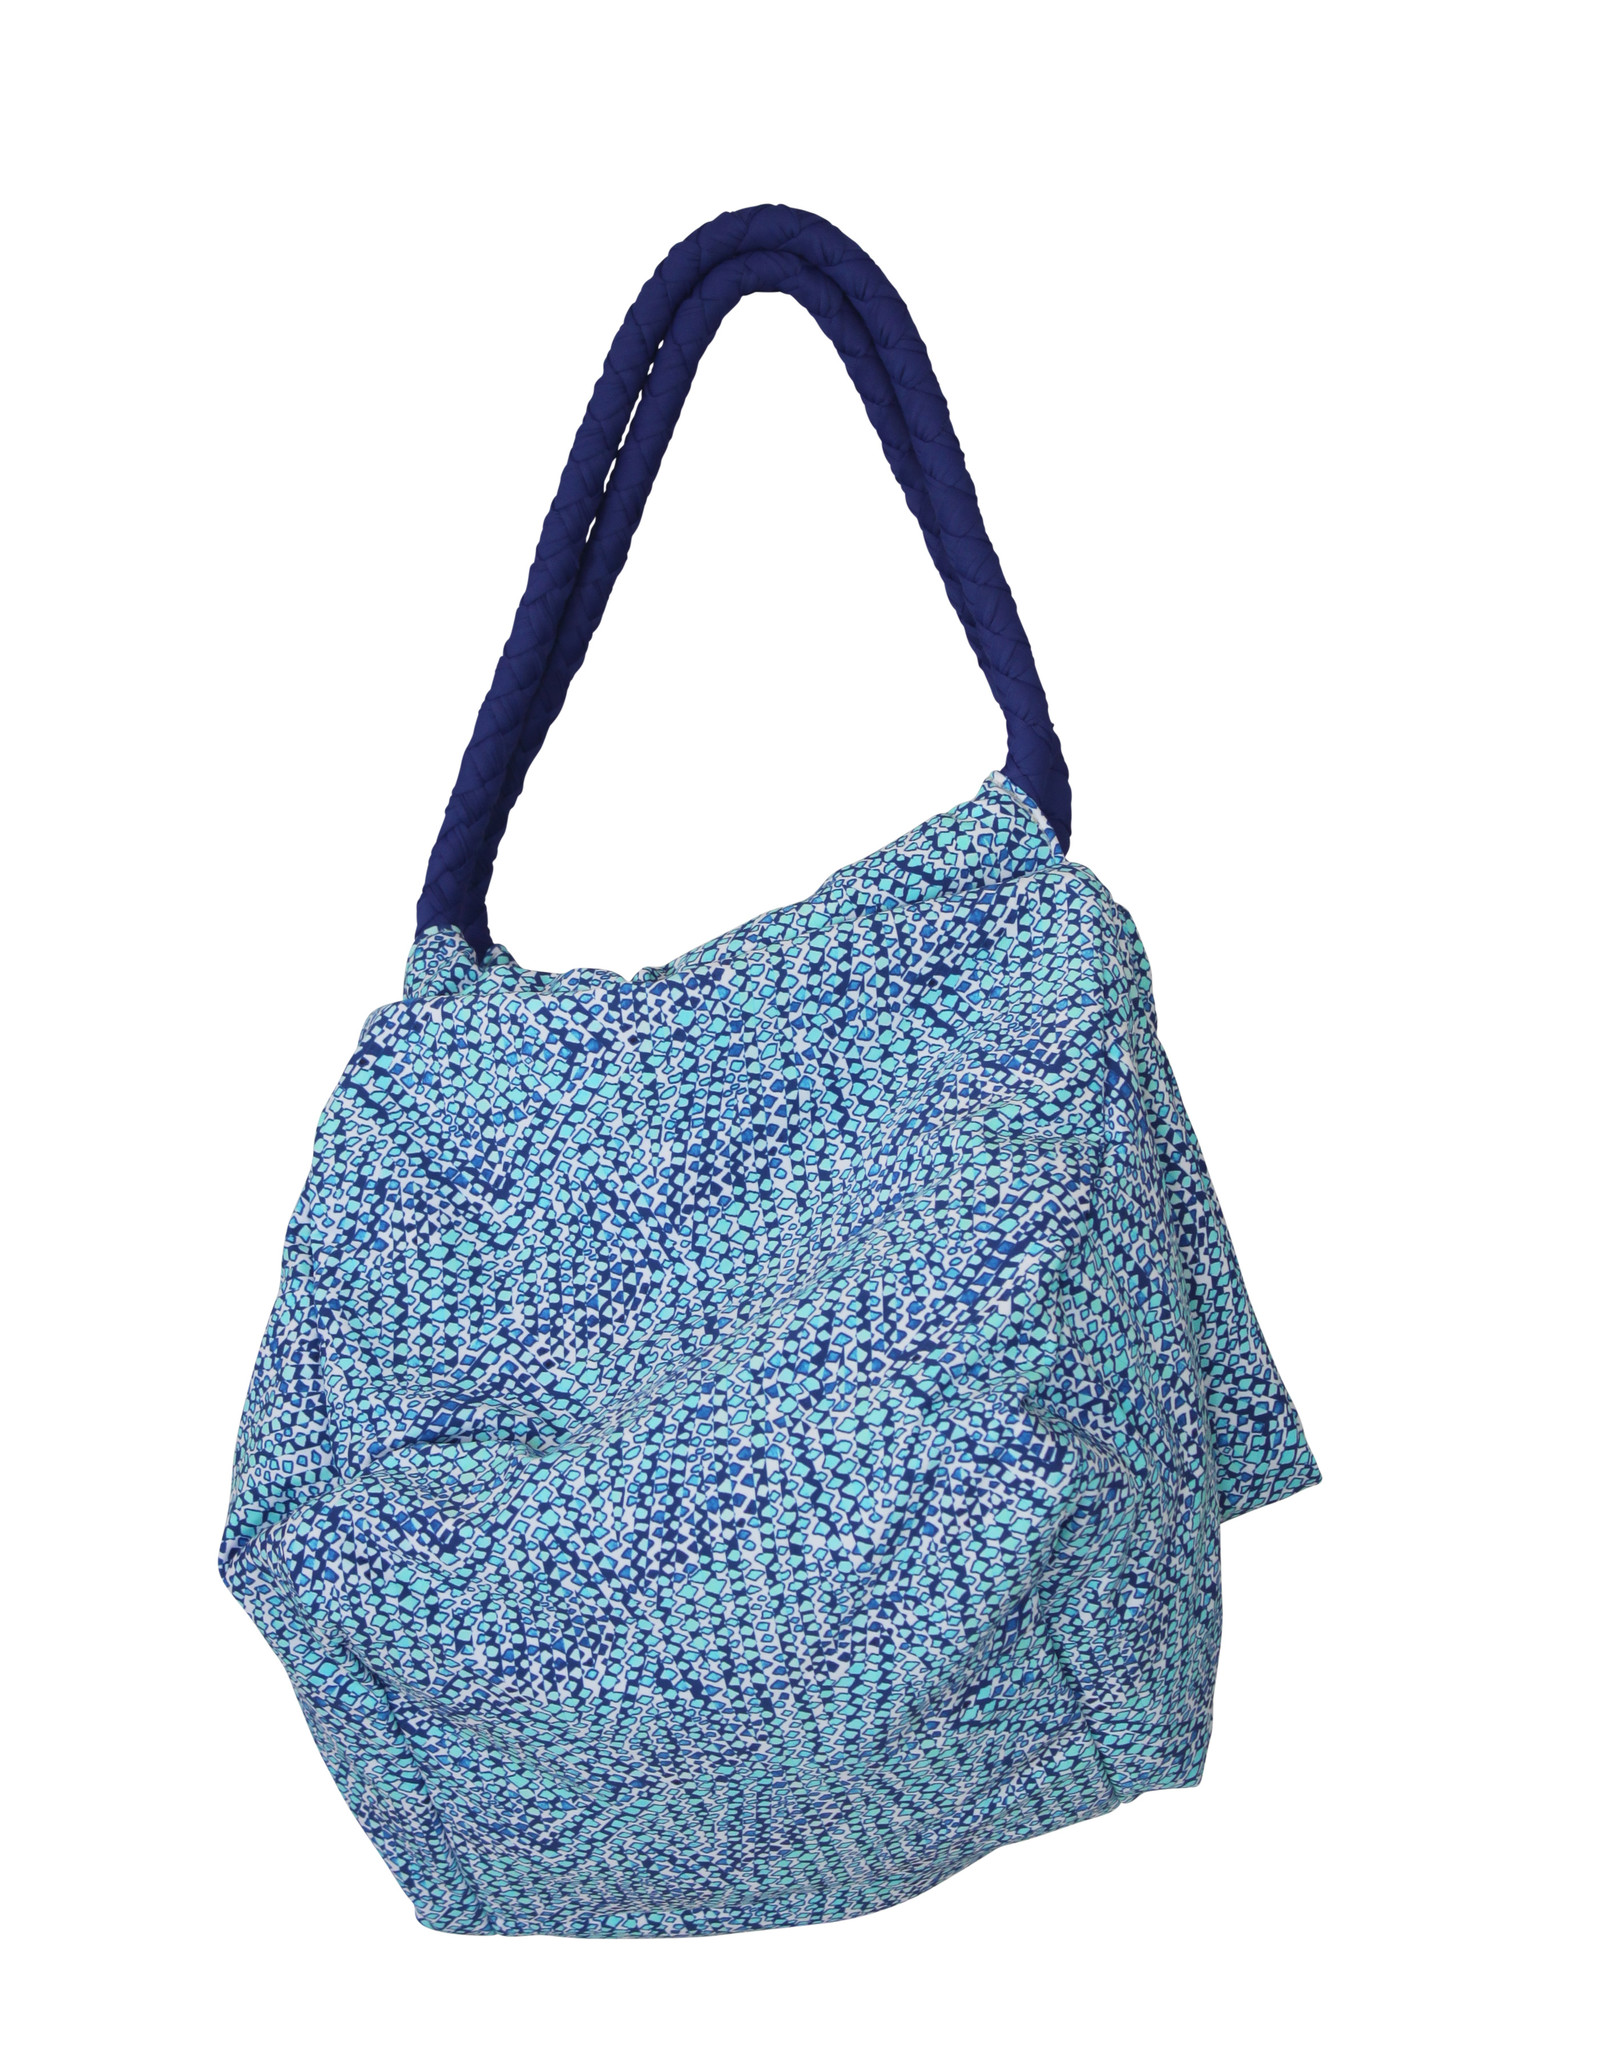 Pualani Large Beach Bag Blue Confetti